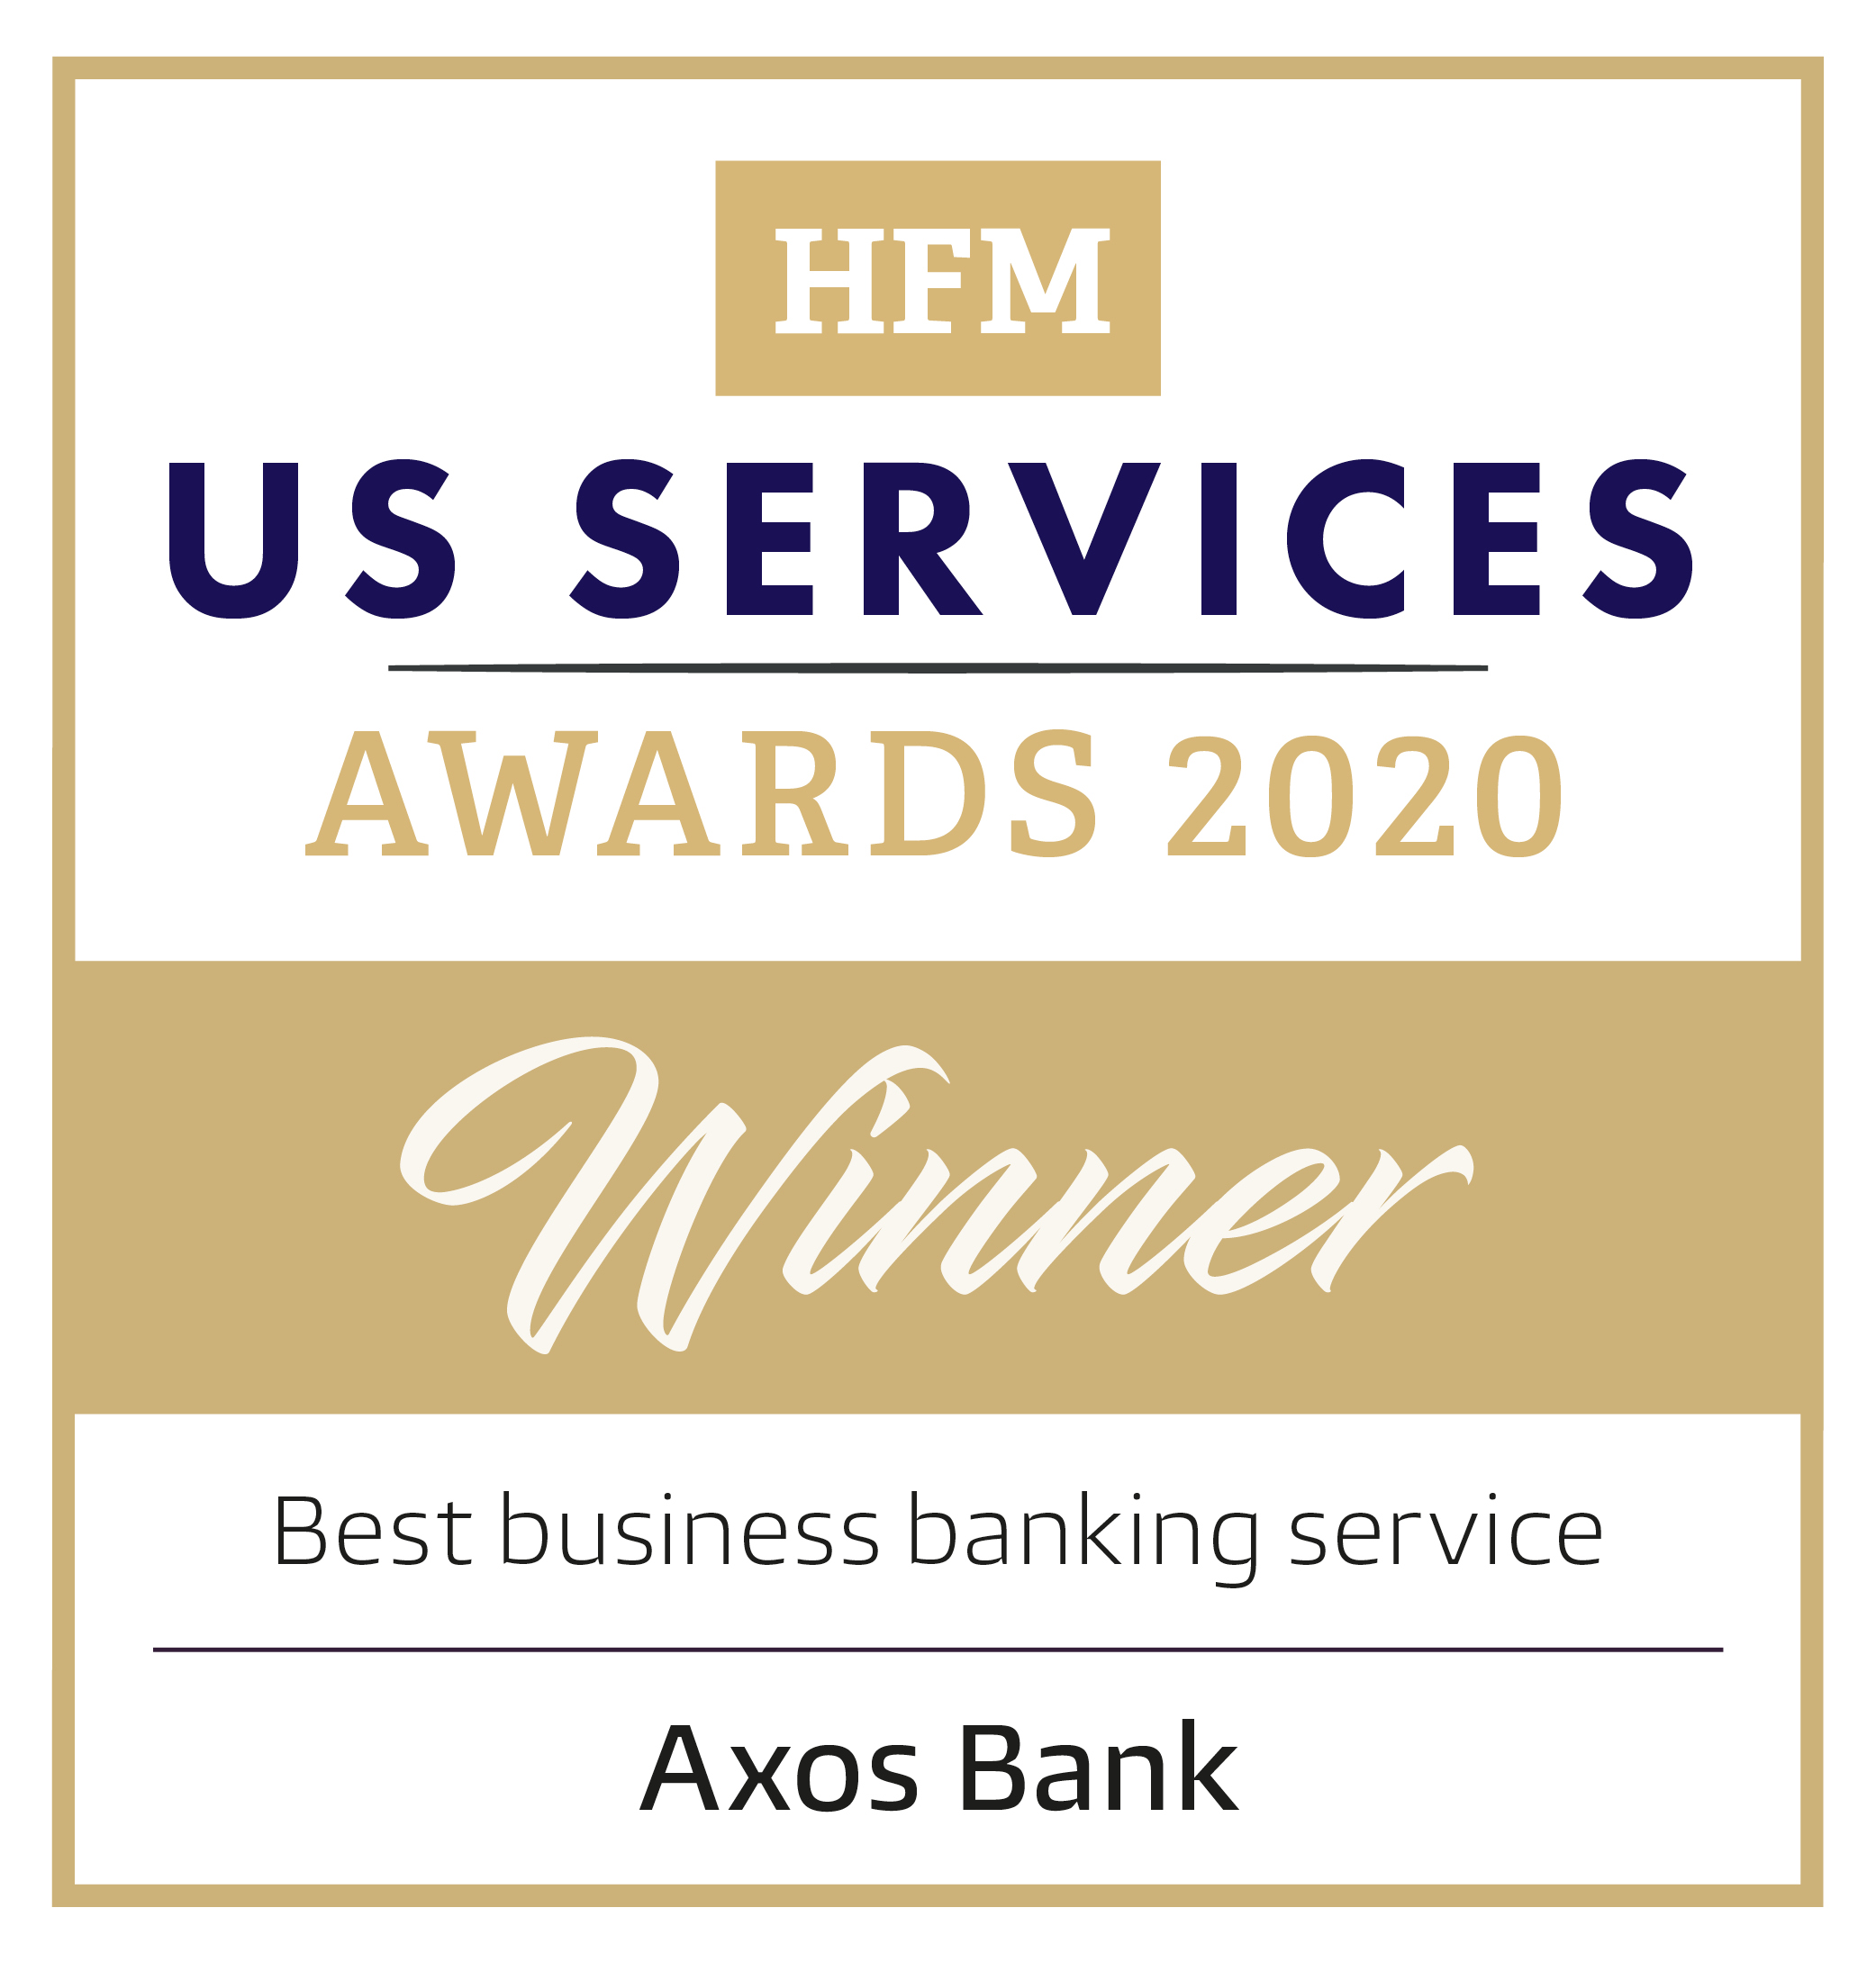 HFM US Services Awards 2020 Winner: Best Business Banking Service